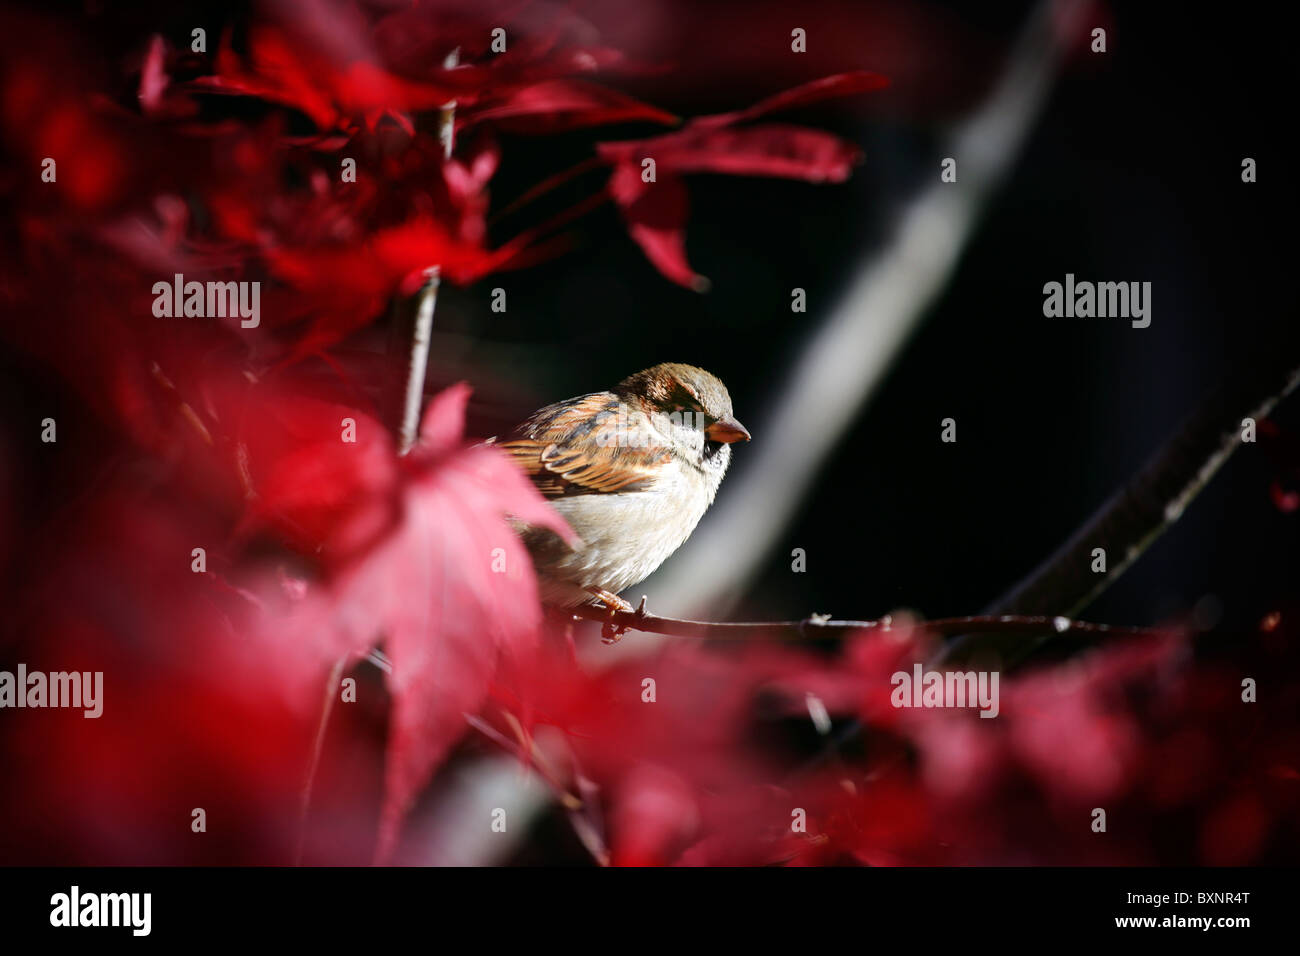 A sparrow sitting on a branch amid new england fall and autumn colored leaves. - Stock Image